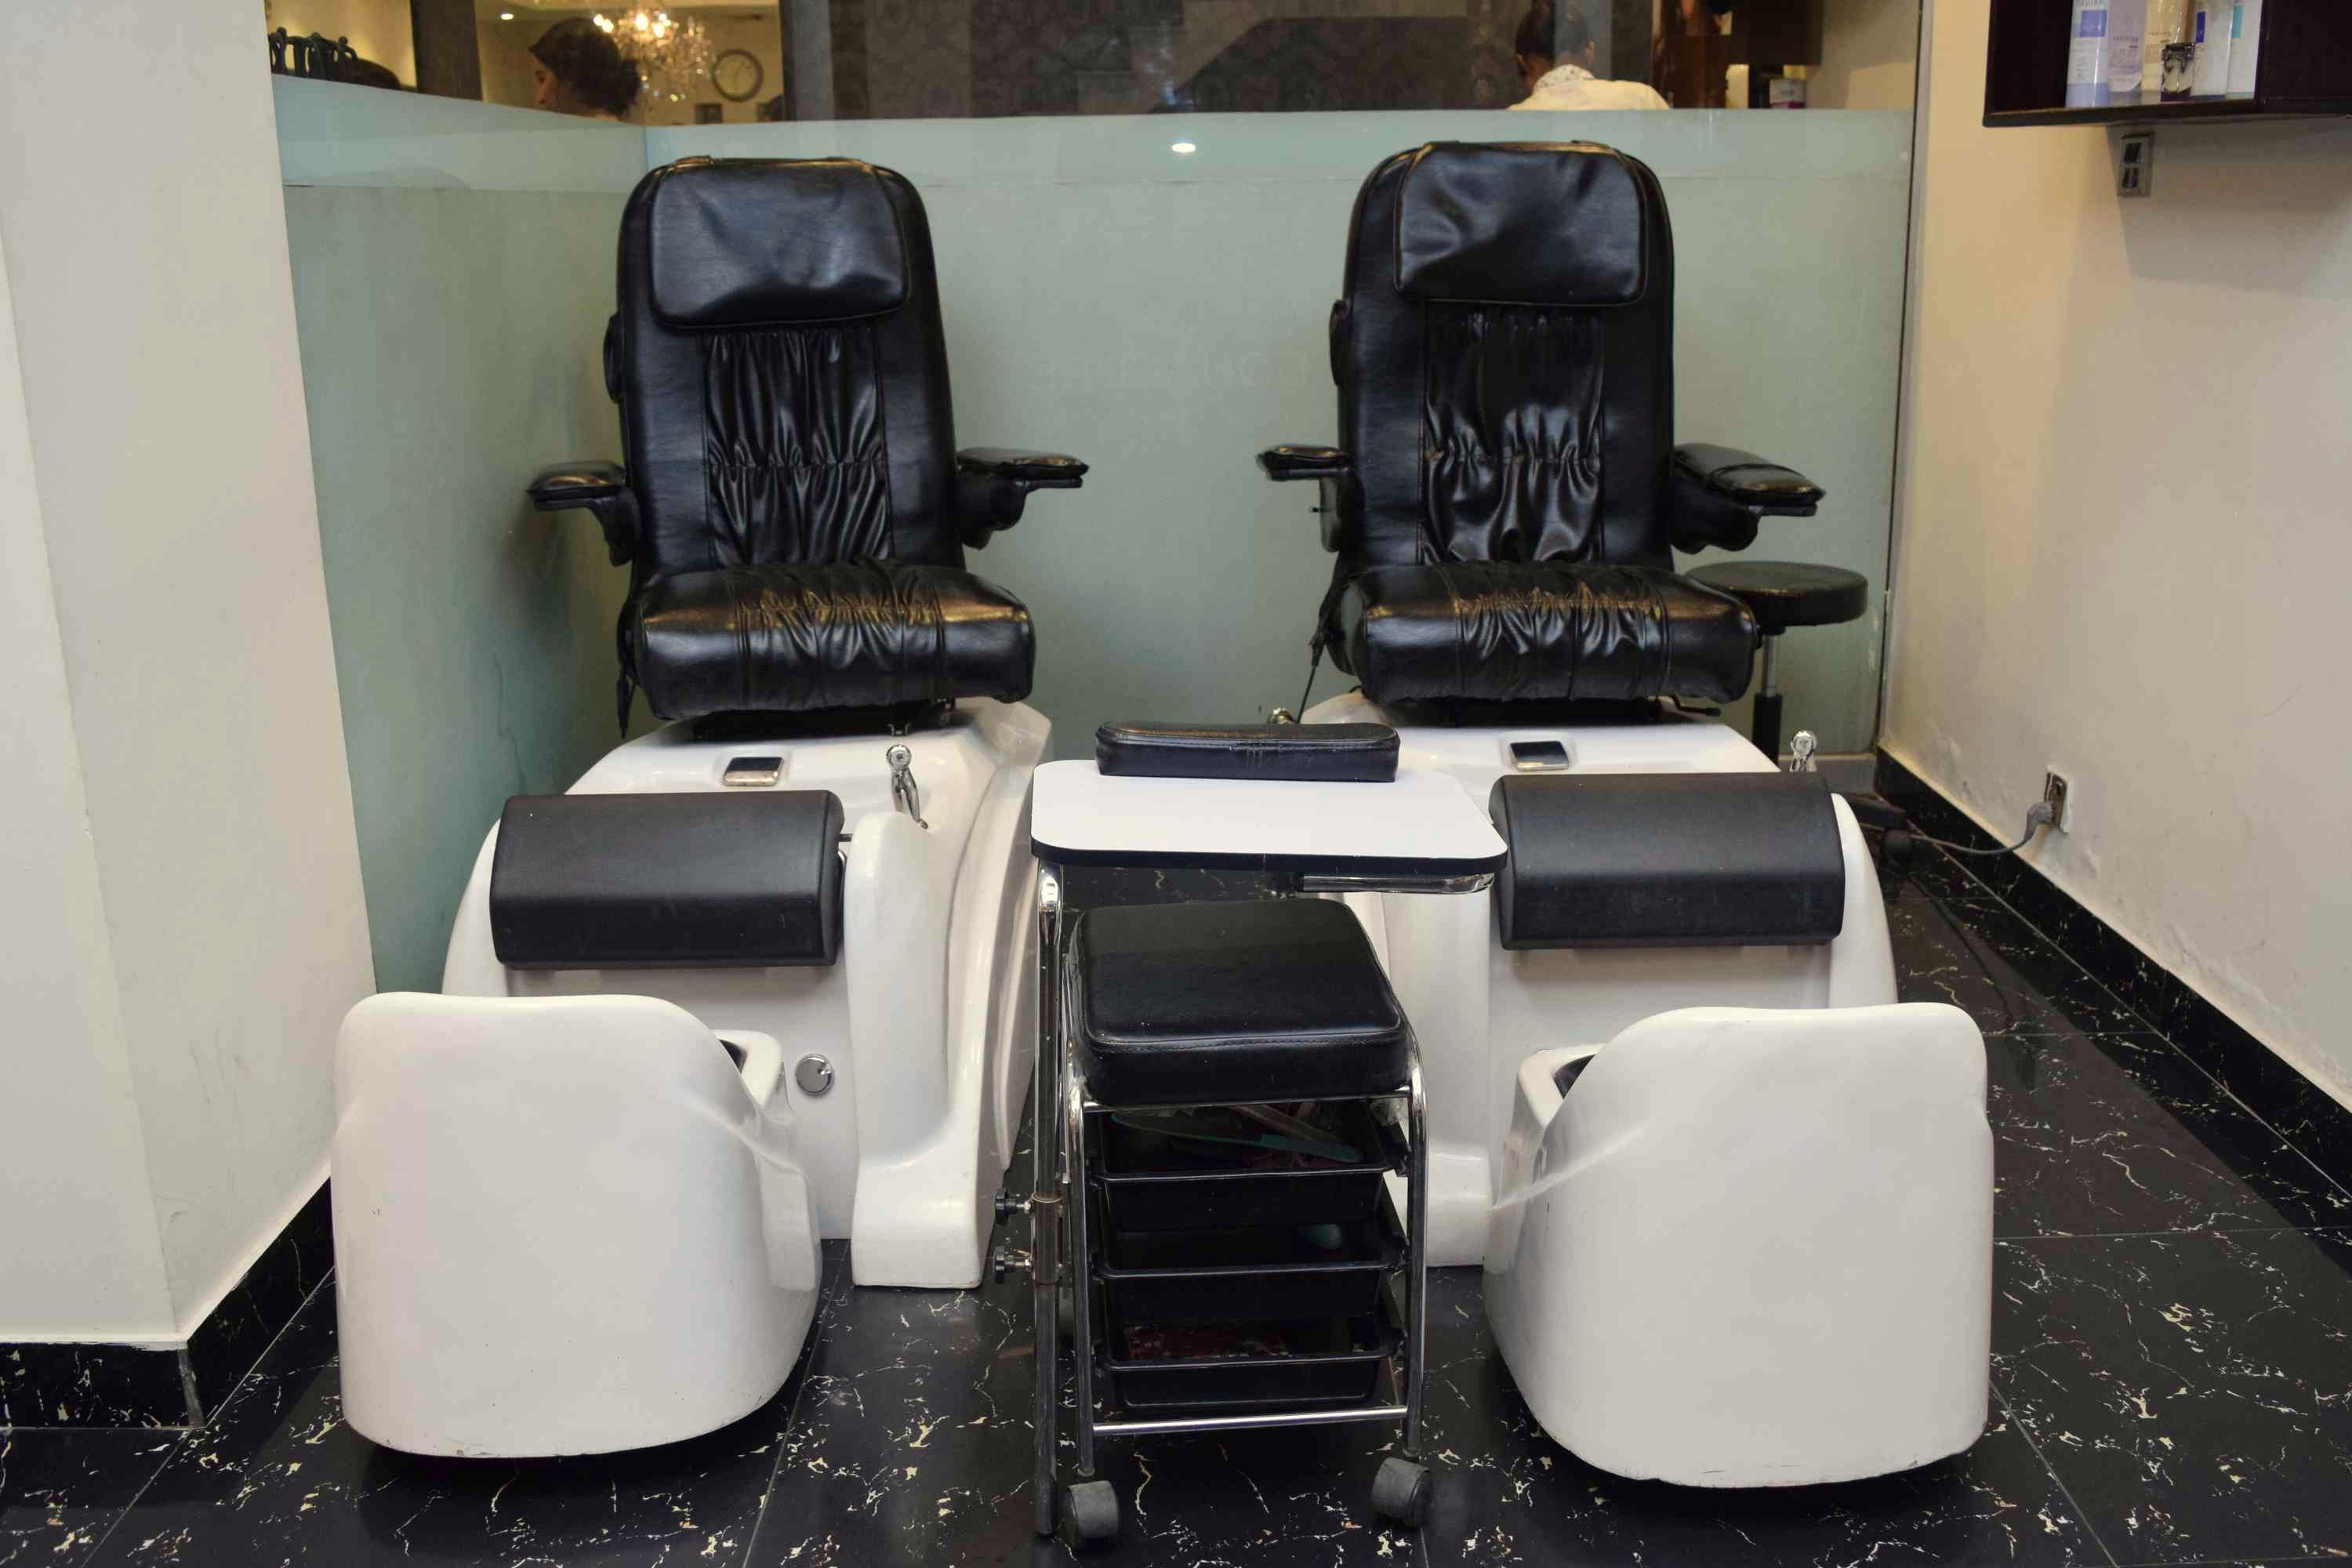 79% off, Rs 1599 only for Dermaclear Whitening Facial or Double Whitening Facial + Whitening Polisher + Whitening Manicure + Whitening Pedicure + Hair Cut with Hair Wash + Neck Shoulder Massage + Threading Eye brows upper lips at Le Reve Beauty Lounge Gulberg, Lahore